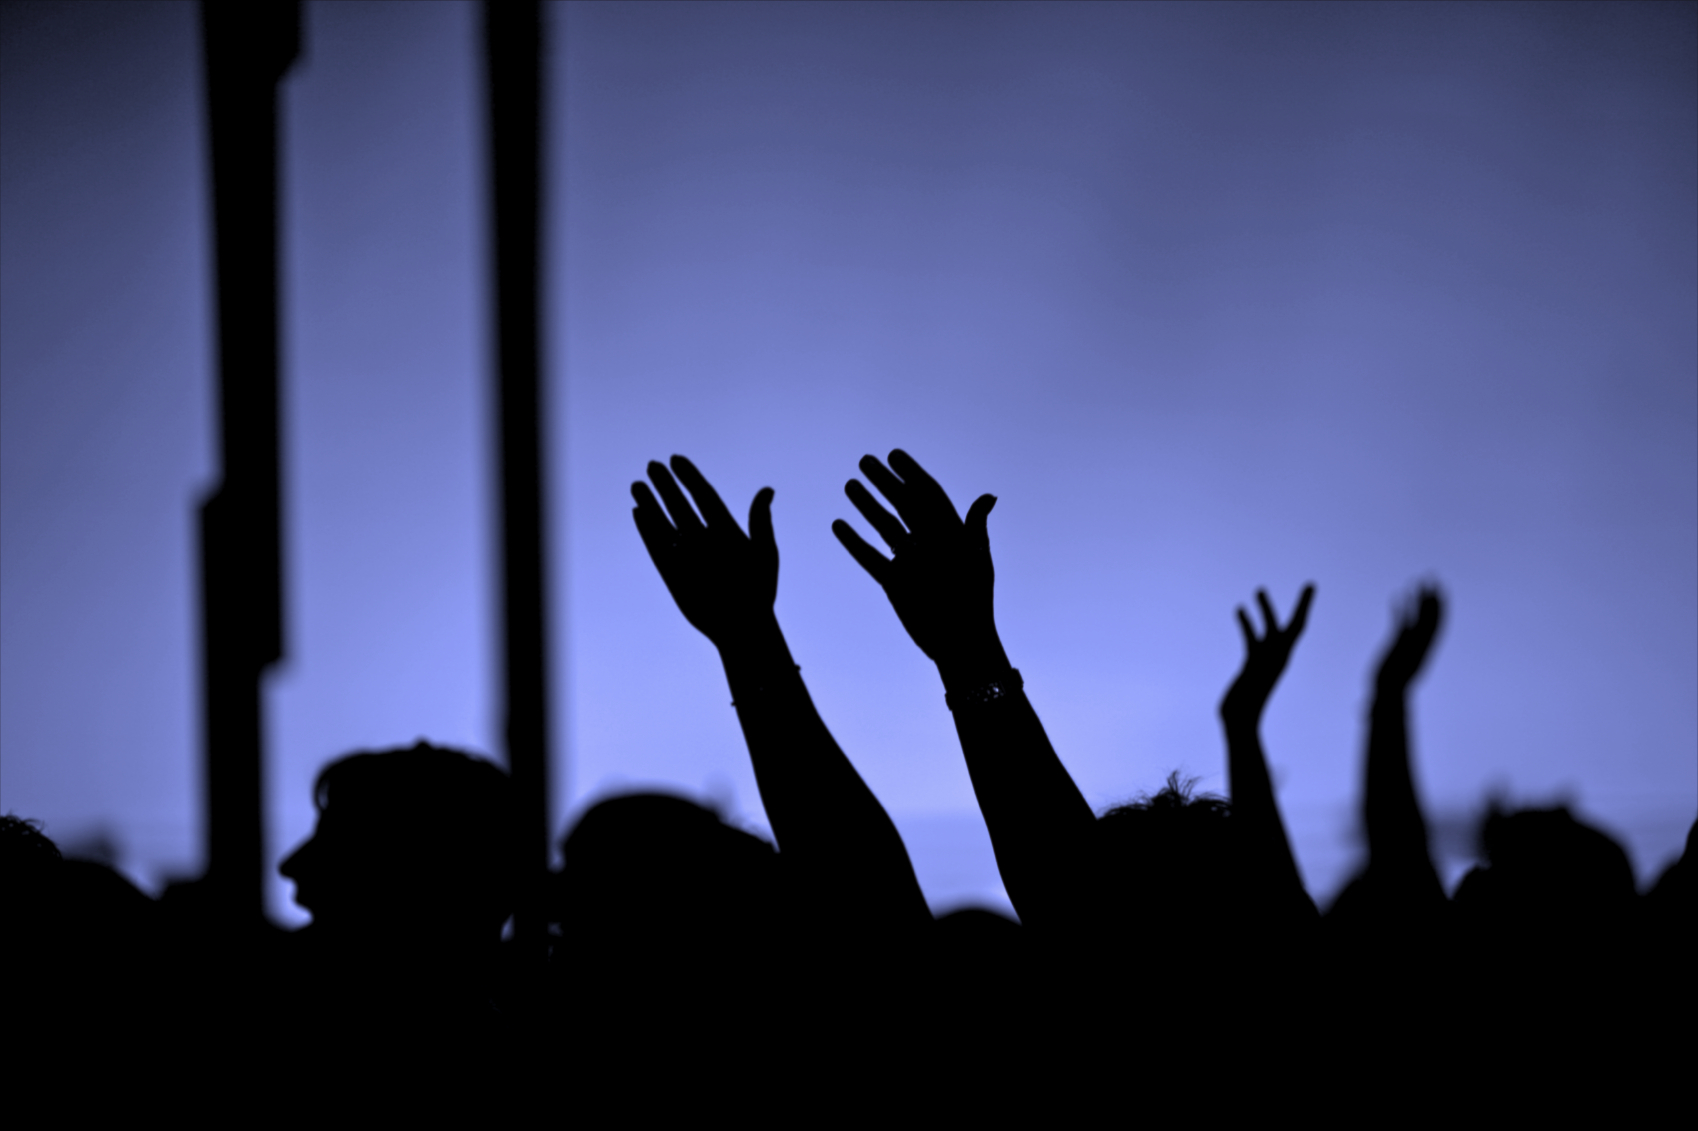 Crowd with hands reaching up